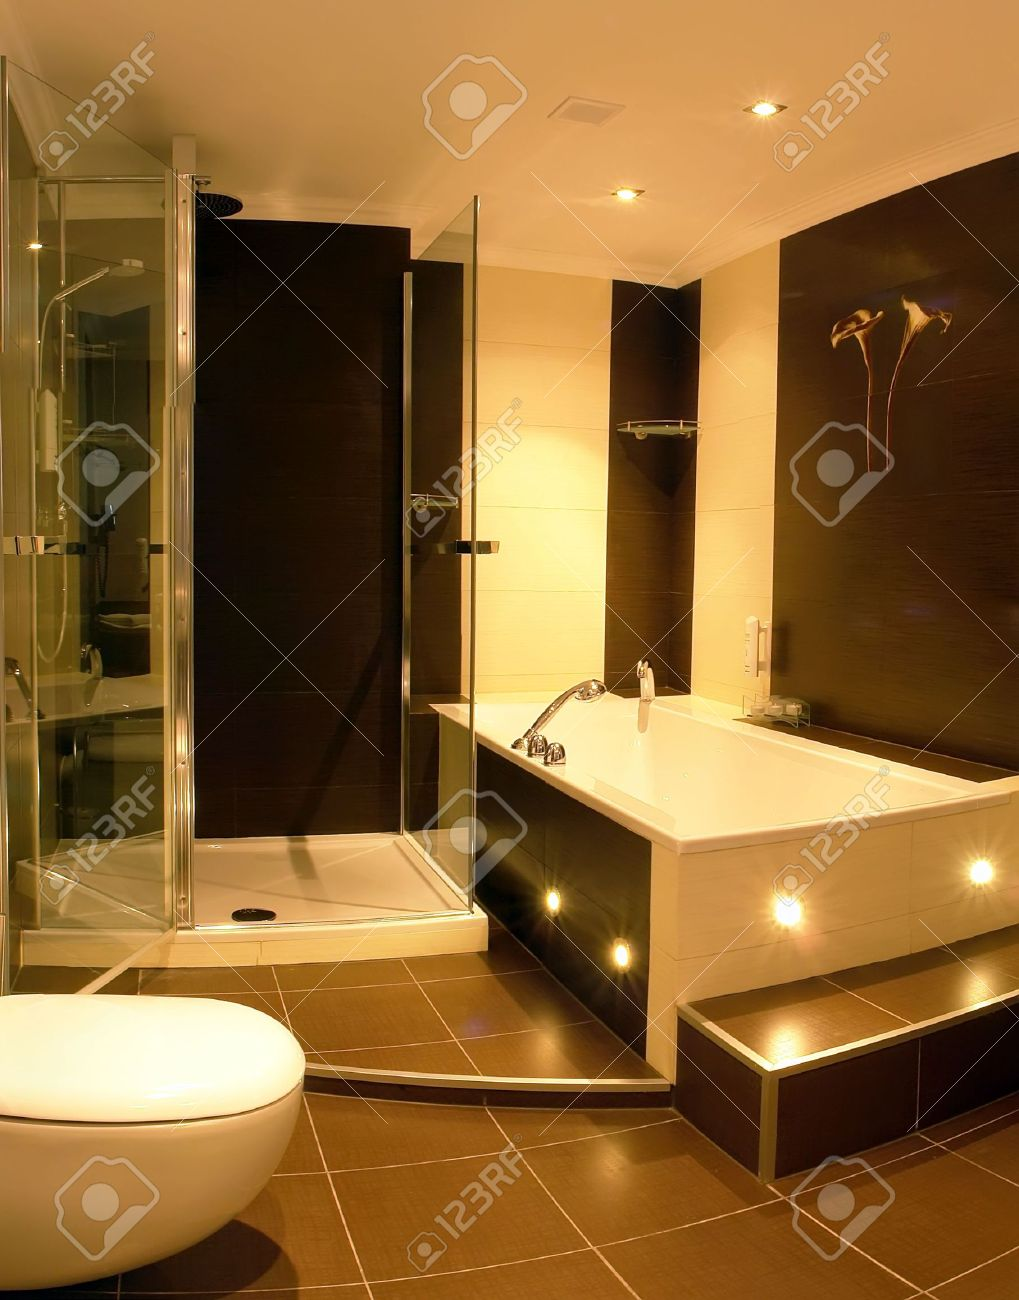 A View Of A Modern Bathroom With A Glass Enclosed Shower Stall ...